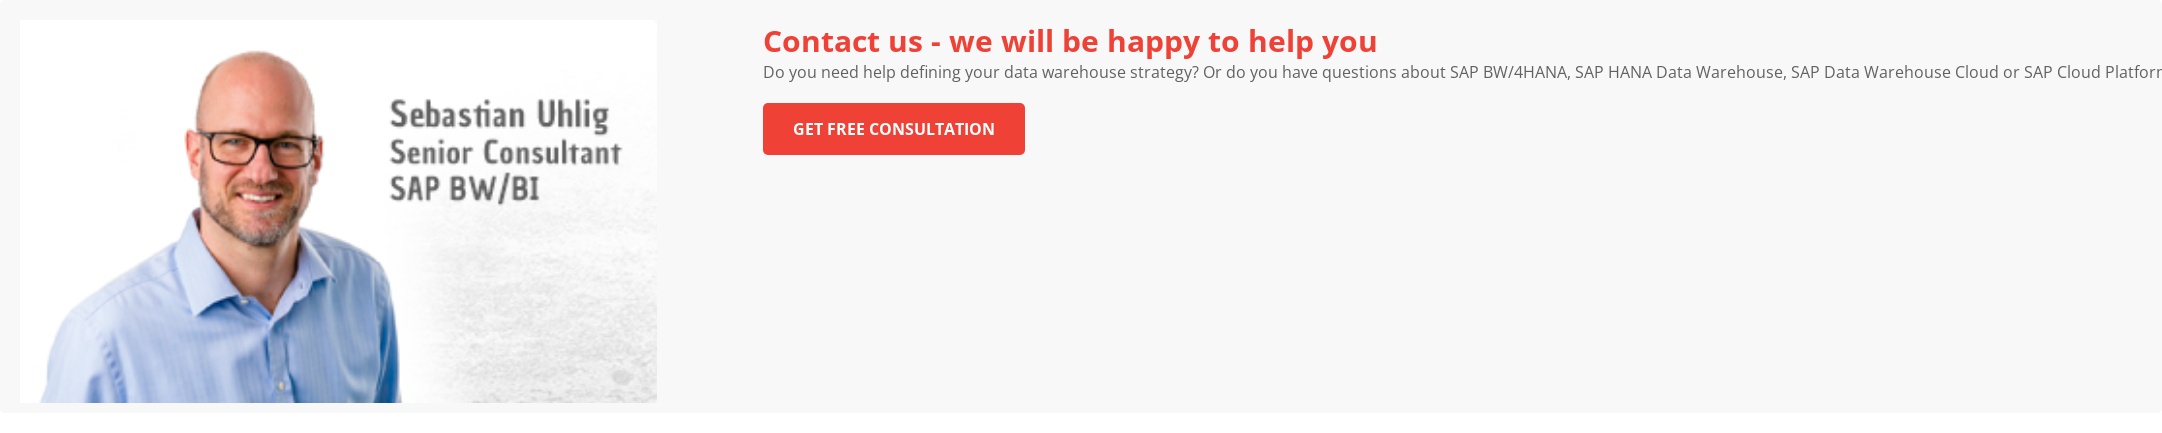 We will support you Do you need help defining your data warehouse strategy? Or do you have  questions about SAP BW/4HANA, SAP HANA Data Warehouse, SAP Data Warehouse Cloud  or SAP Cloud Platform? We would be happy to advise you on all aspects of data  warehousing, reporting and analysis.  We're here to help